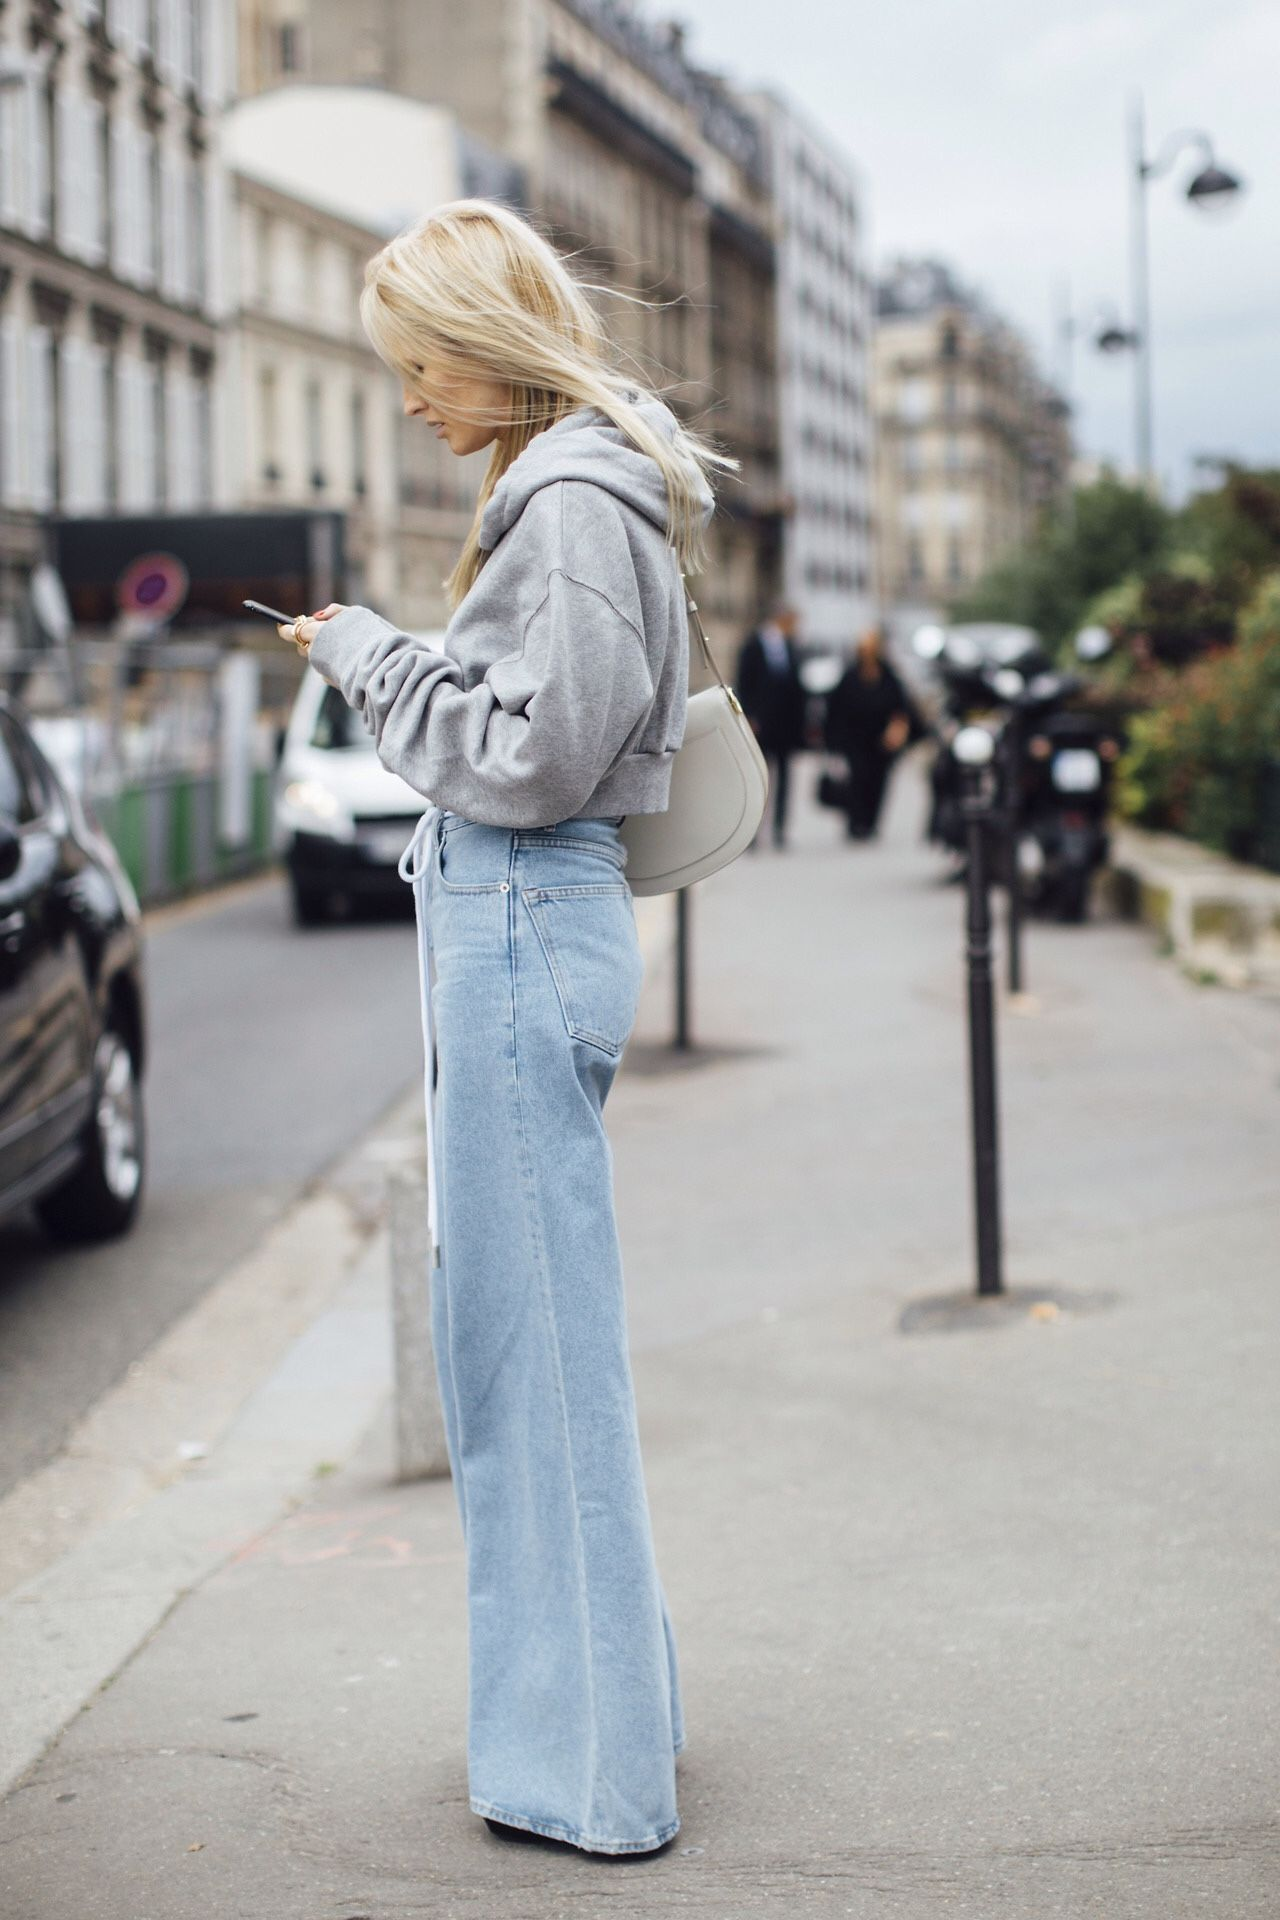 how to wear oversized sweatshirt outfits in the seasons trendy new ways herstylecode How to Wear Oversized Sweatshirt Outfits in the Season's Trendy New Ways